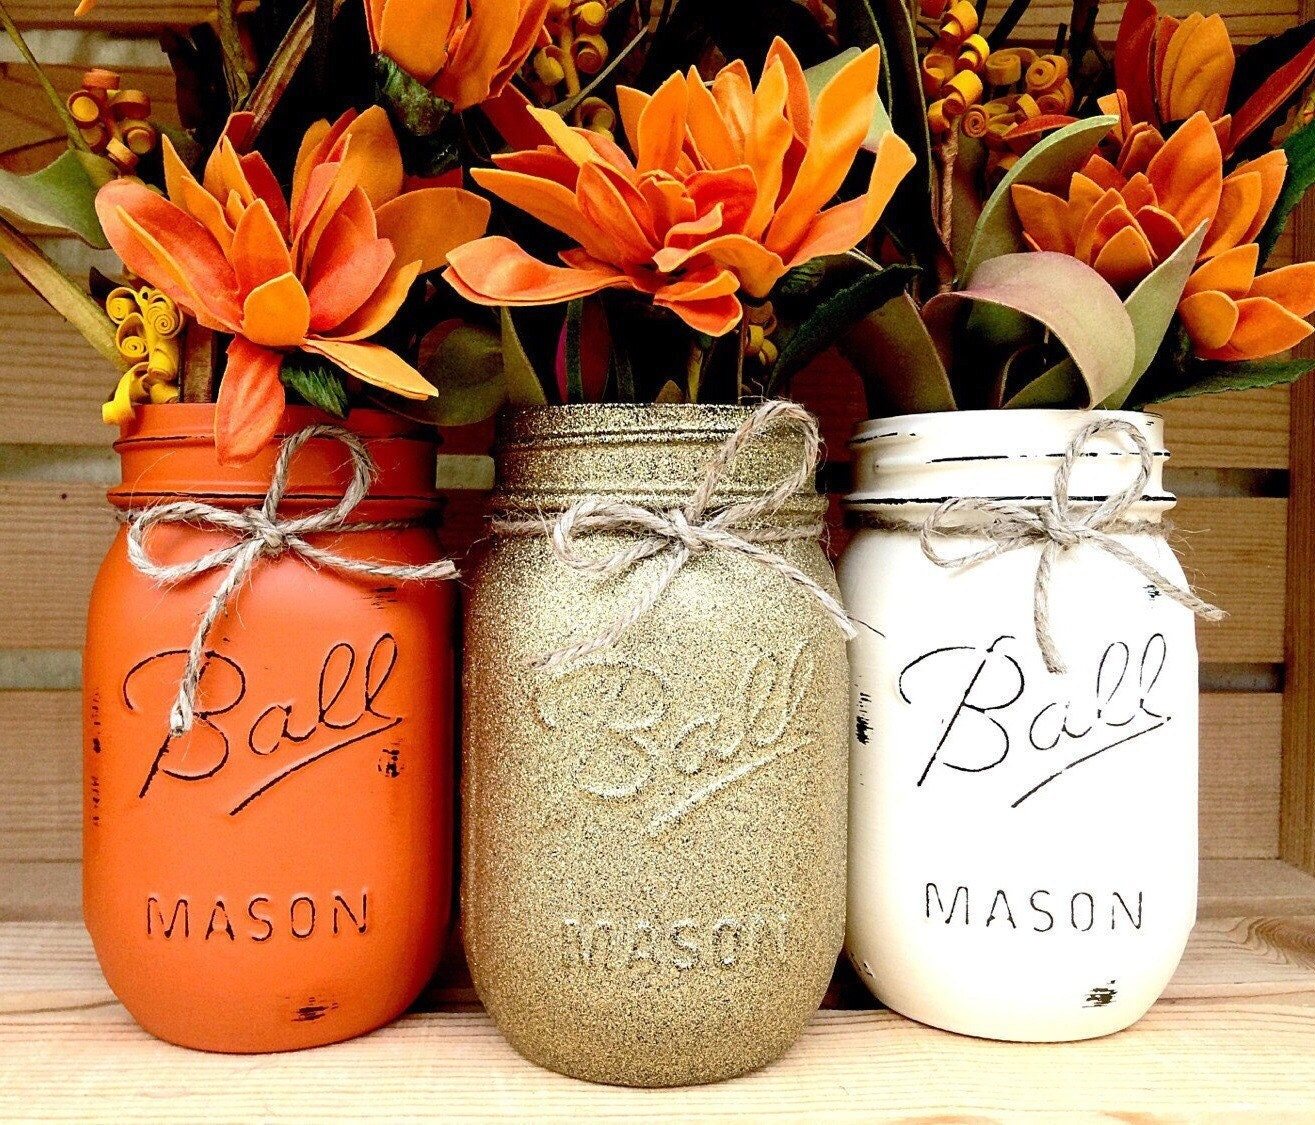 Diy Mason Jar Design Decorating Ideas: Pick 3 Mason Jar Trio Autumn Home Decor Fall Decor